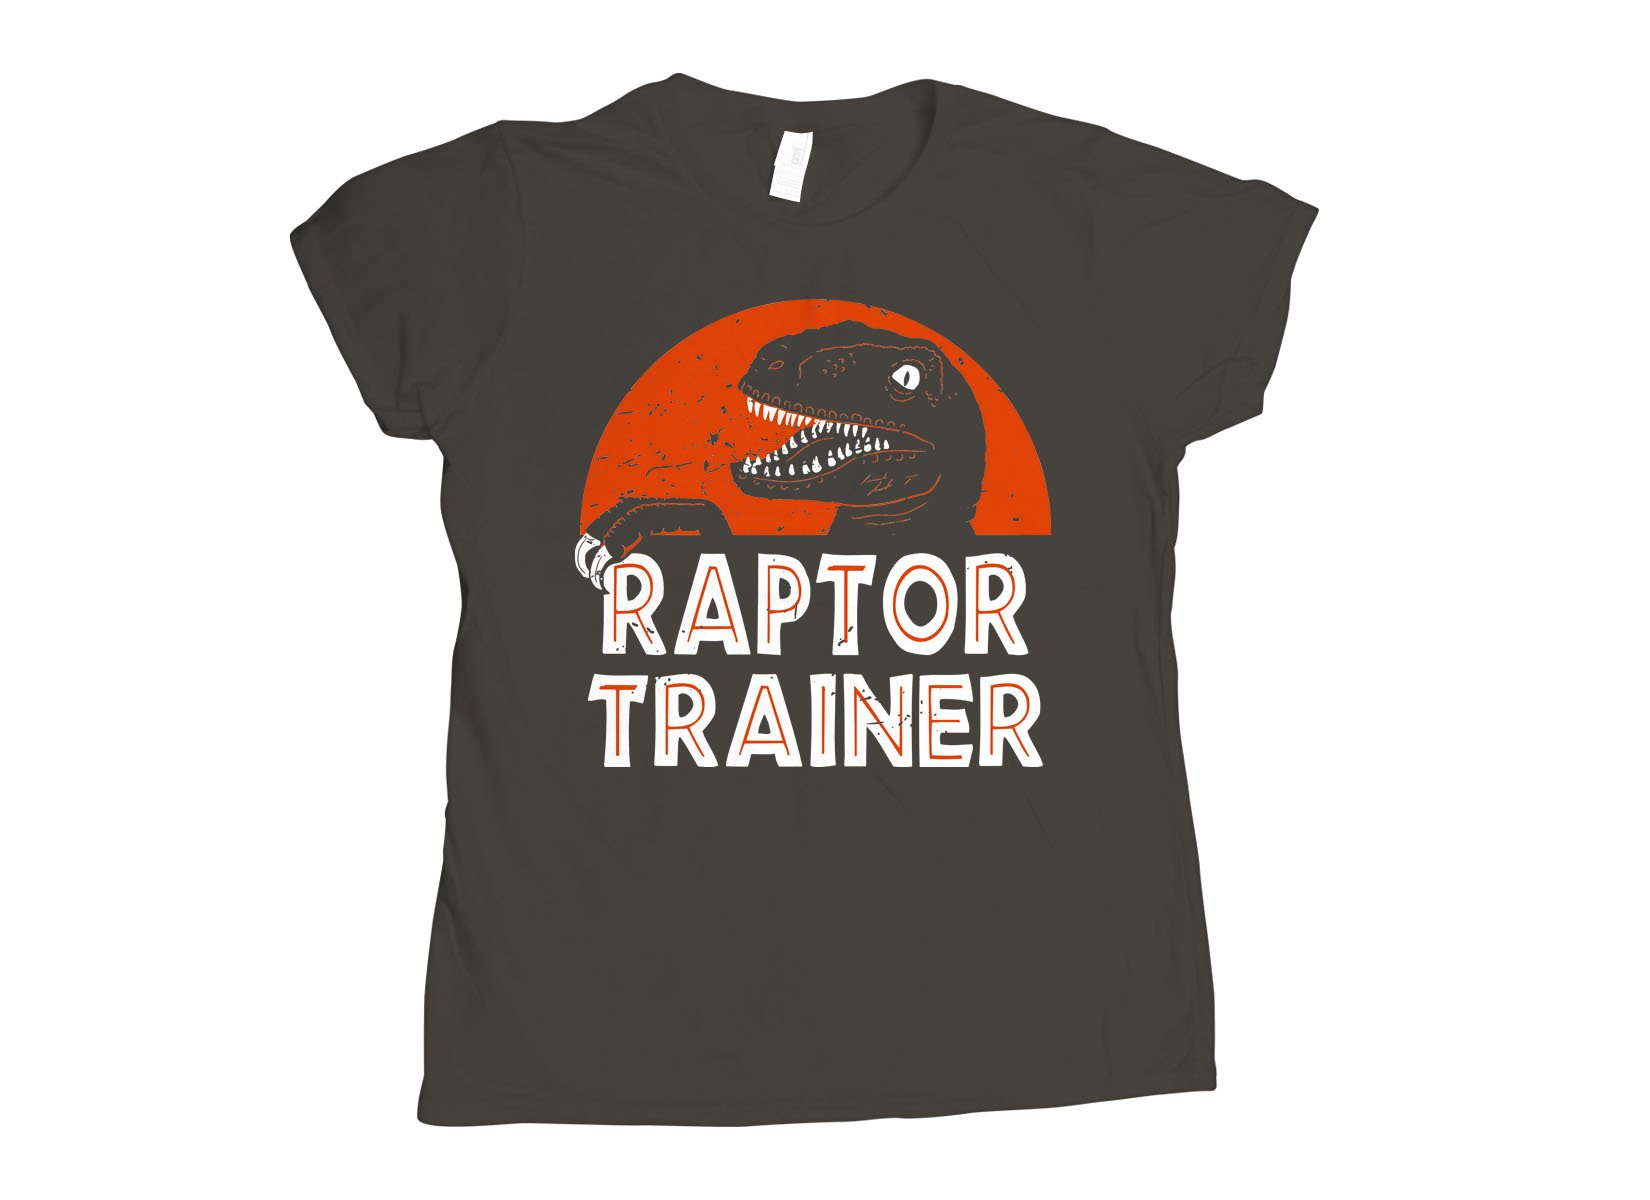 Raptor Trainer on Womens T-Shirt